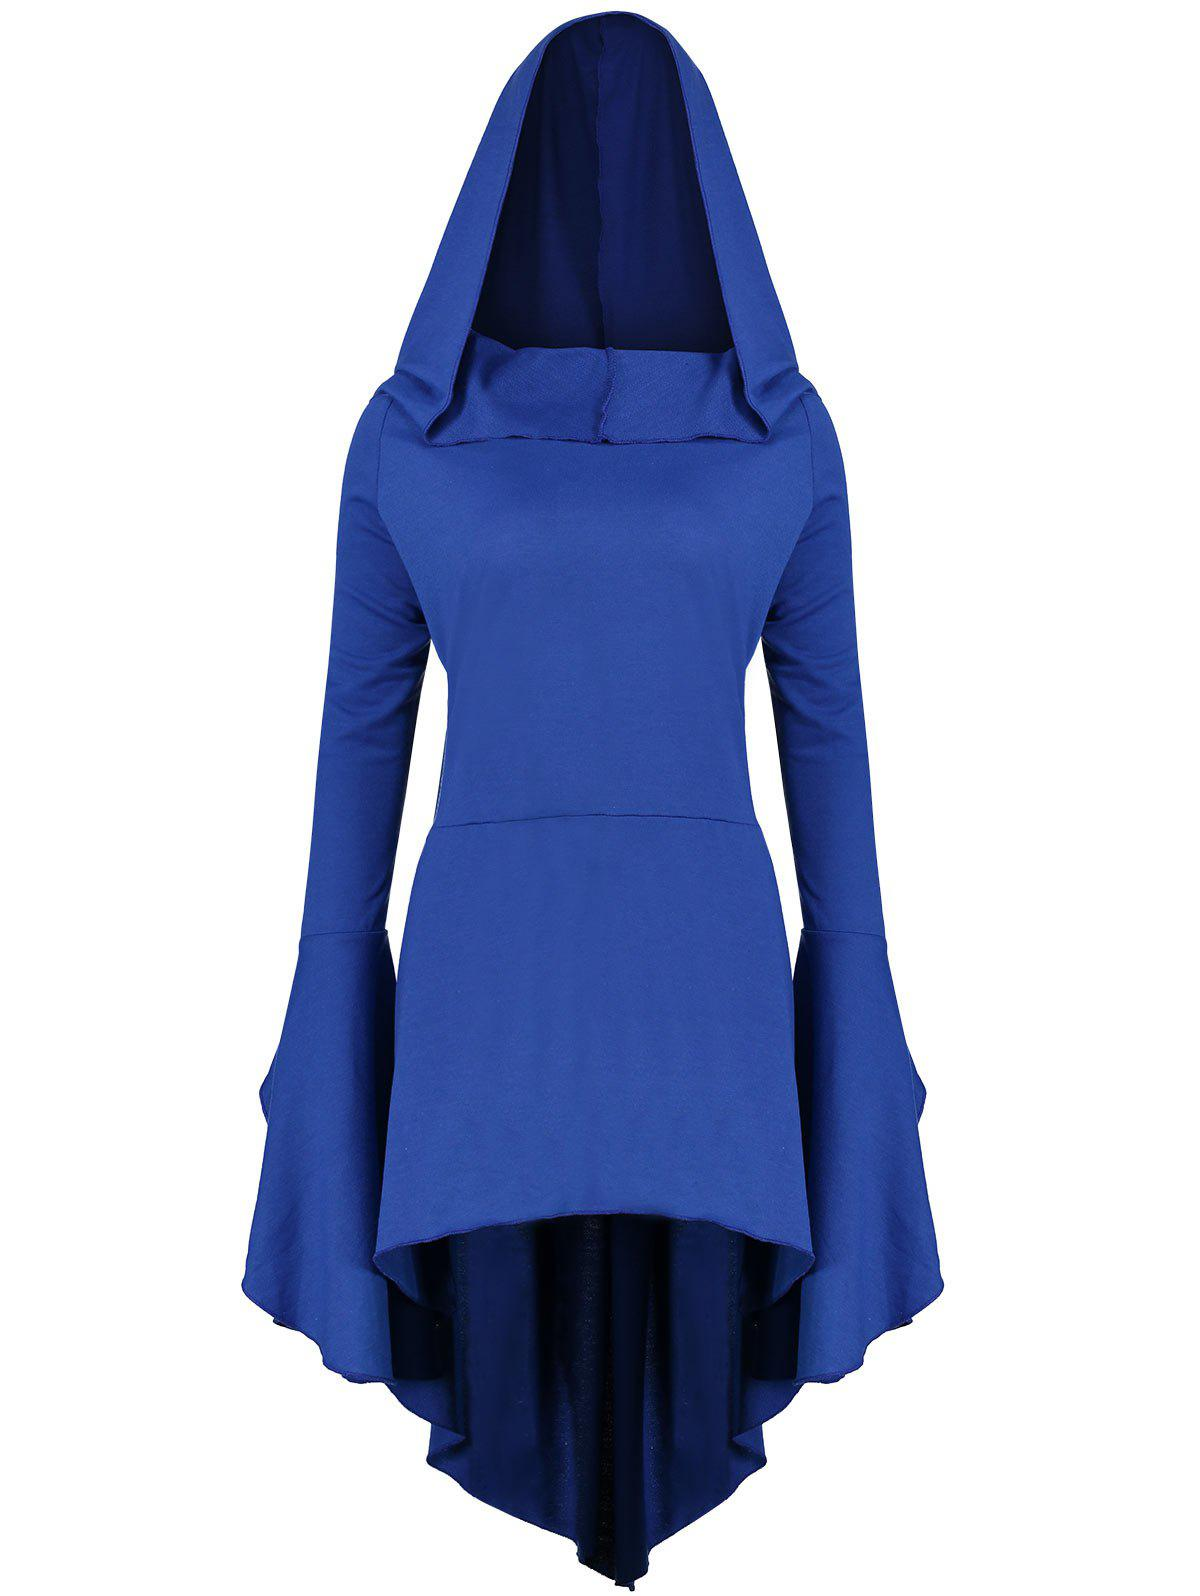 Flare Sleeve Long Plus Size High Low HoodieWOMEN<br><br>Size: XL; Color: BLUE; Material: Polyester,Spandex; Shirt Length: Long; Sleeve Length: Full; Style: Fashion; Pattern Style: Solid; Season: Fall,Spring; Weight: 0.7100kg; Package Contents: 1 x Hoodie;